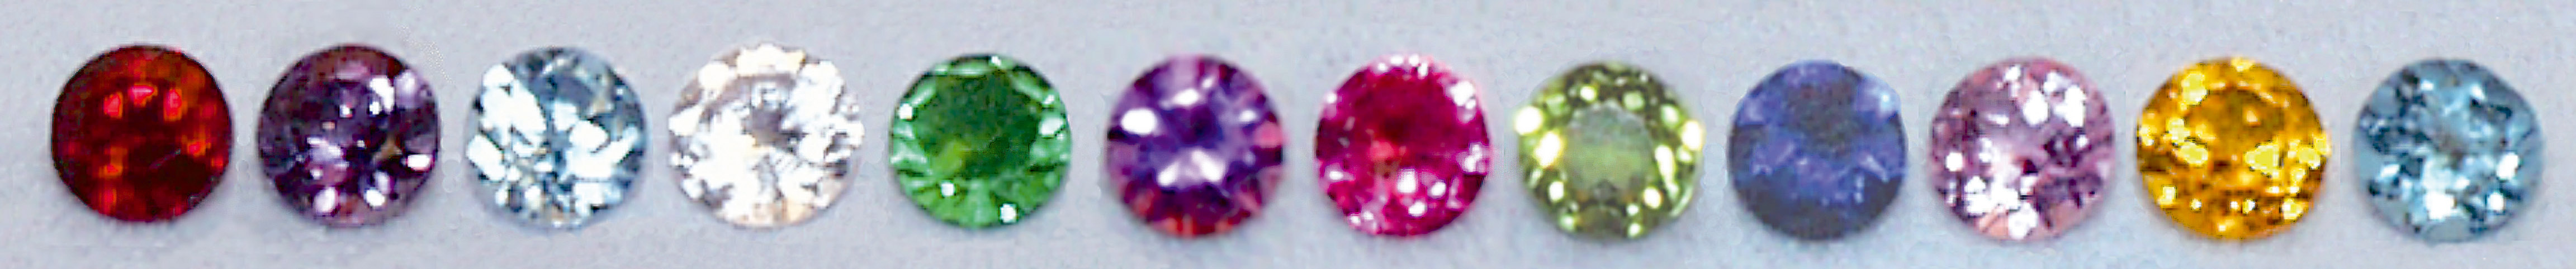 FB414/01 Genuine Swarovski Crystals/Foilbacks--Round January 3.0mm